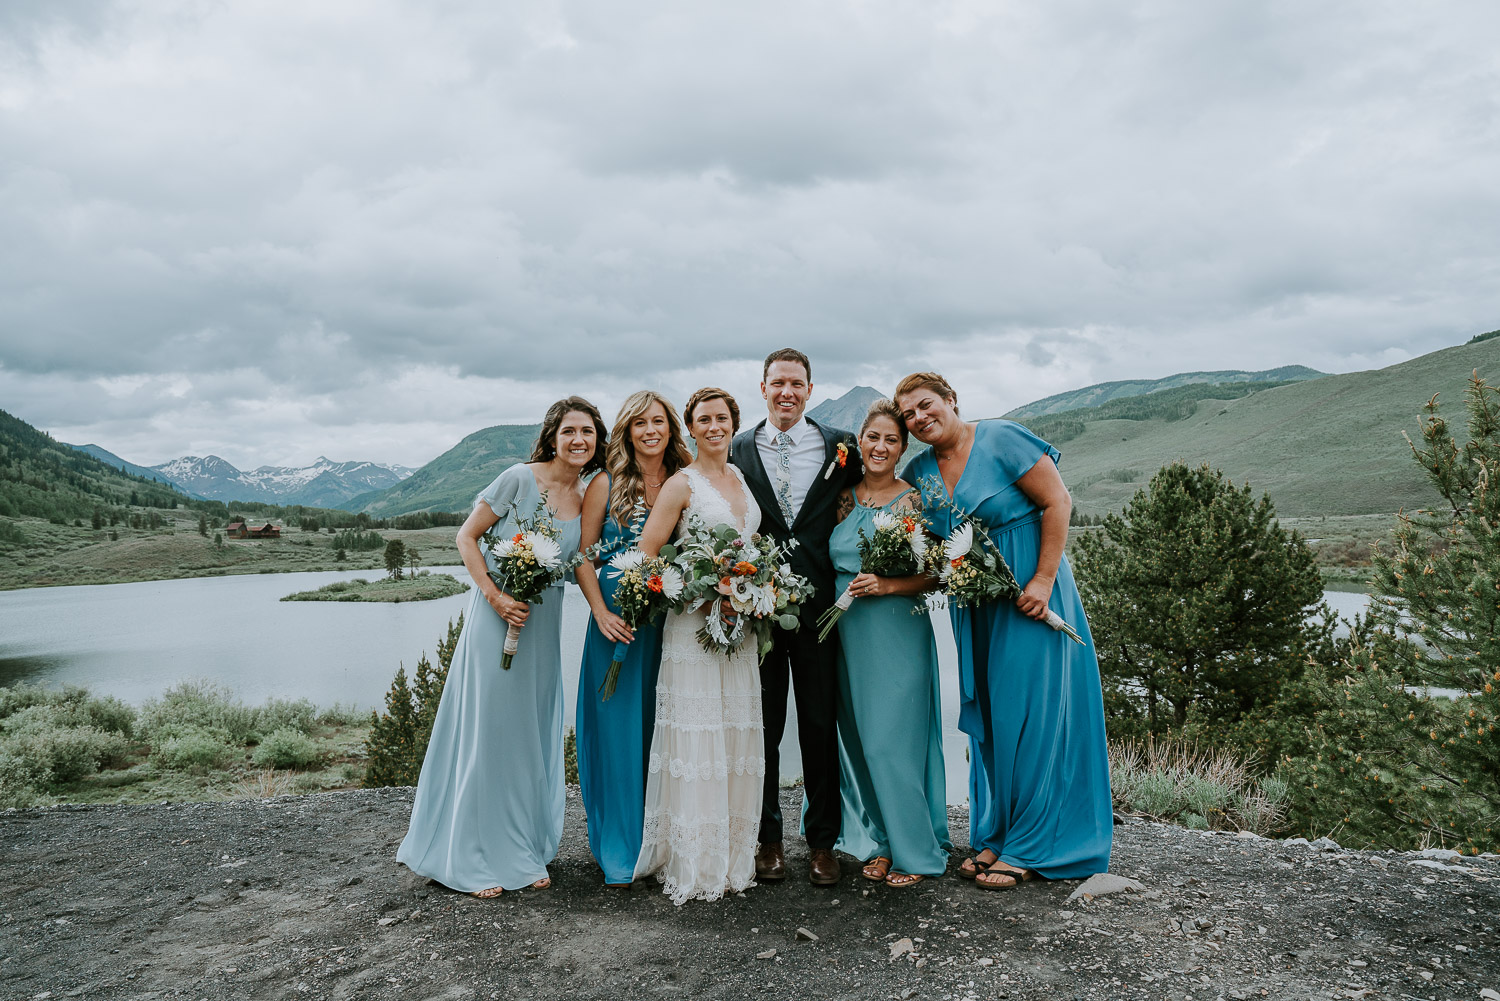 Colorado Wedding Photography, Intimate Wedding, Colorado elopement photography, crested butte wedding, bridal party